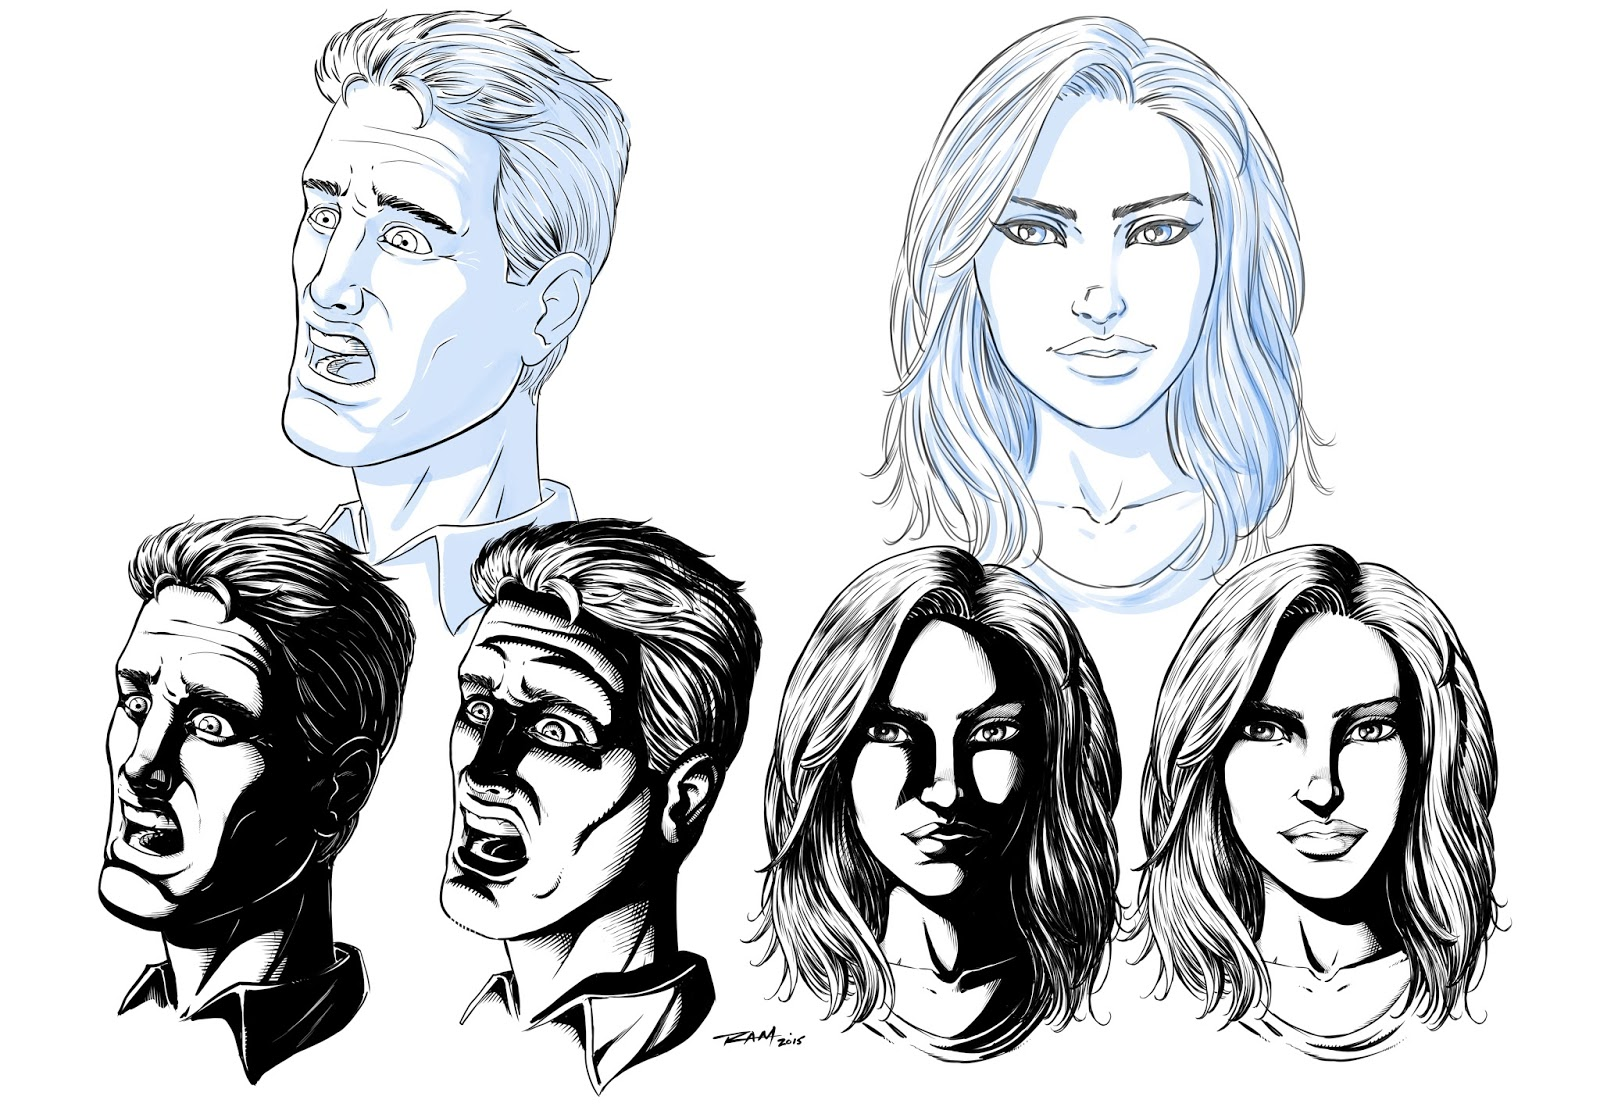 Ram Studios Comics: How to Draw Shadows on Comic Book Faces by ...